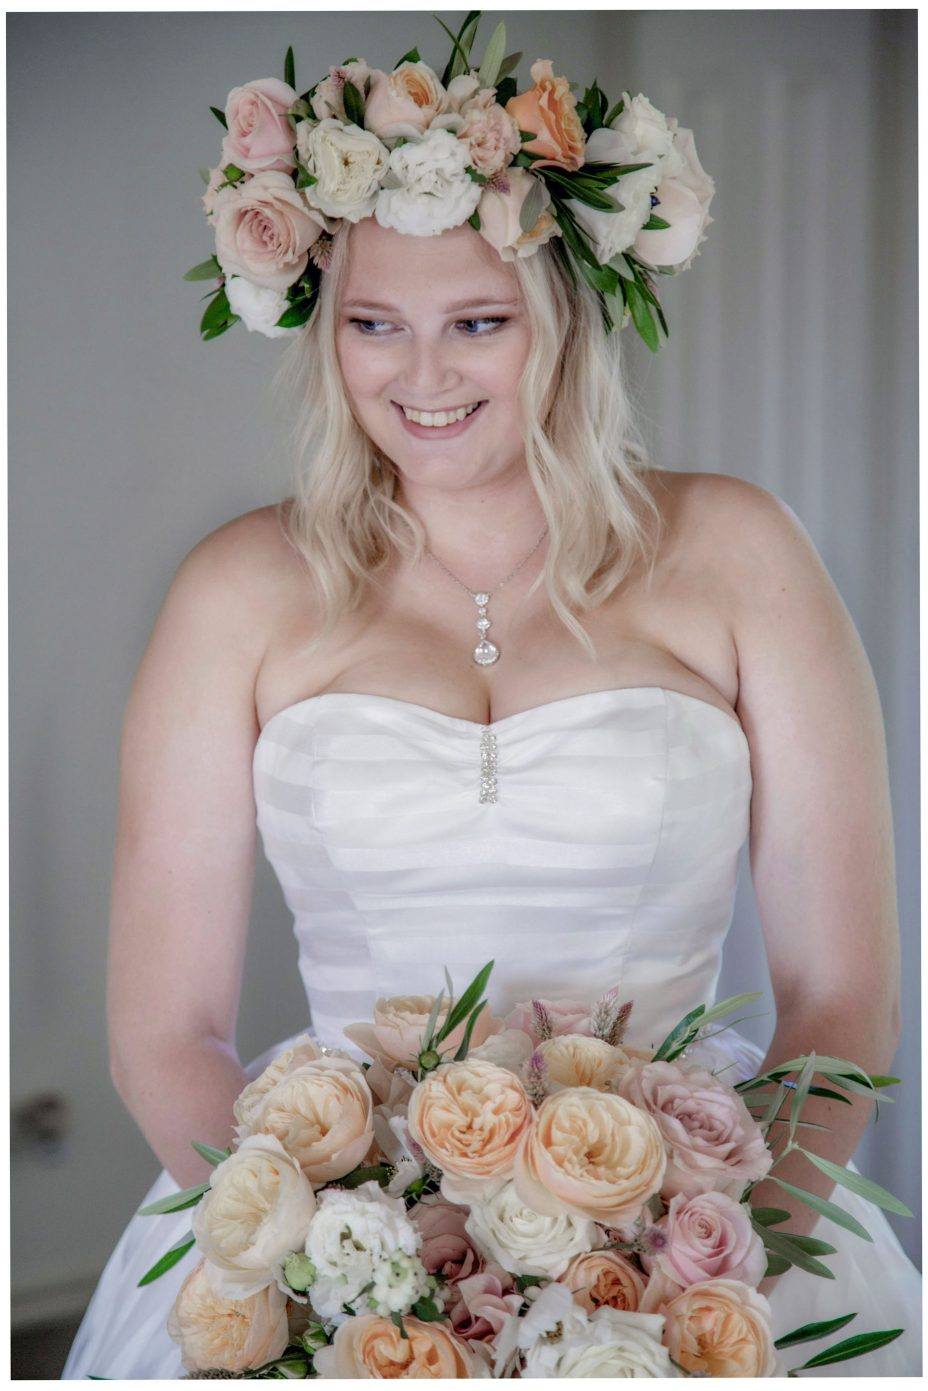 Portrait of blond haired bride wearing flower crown and carrying wedding bouquet